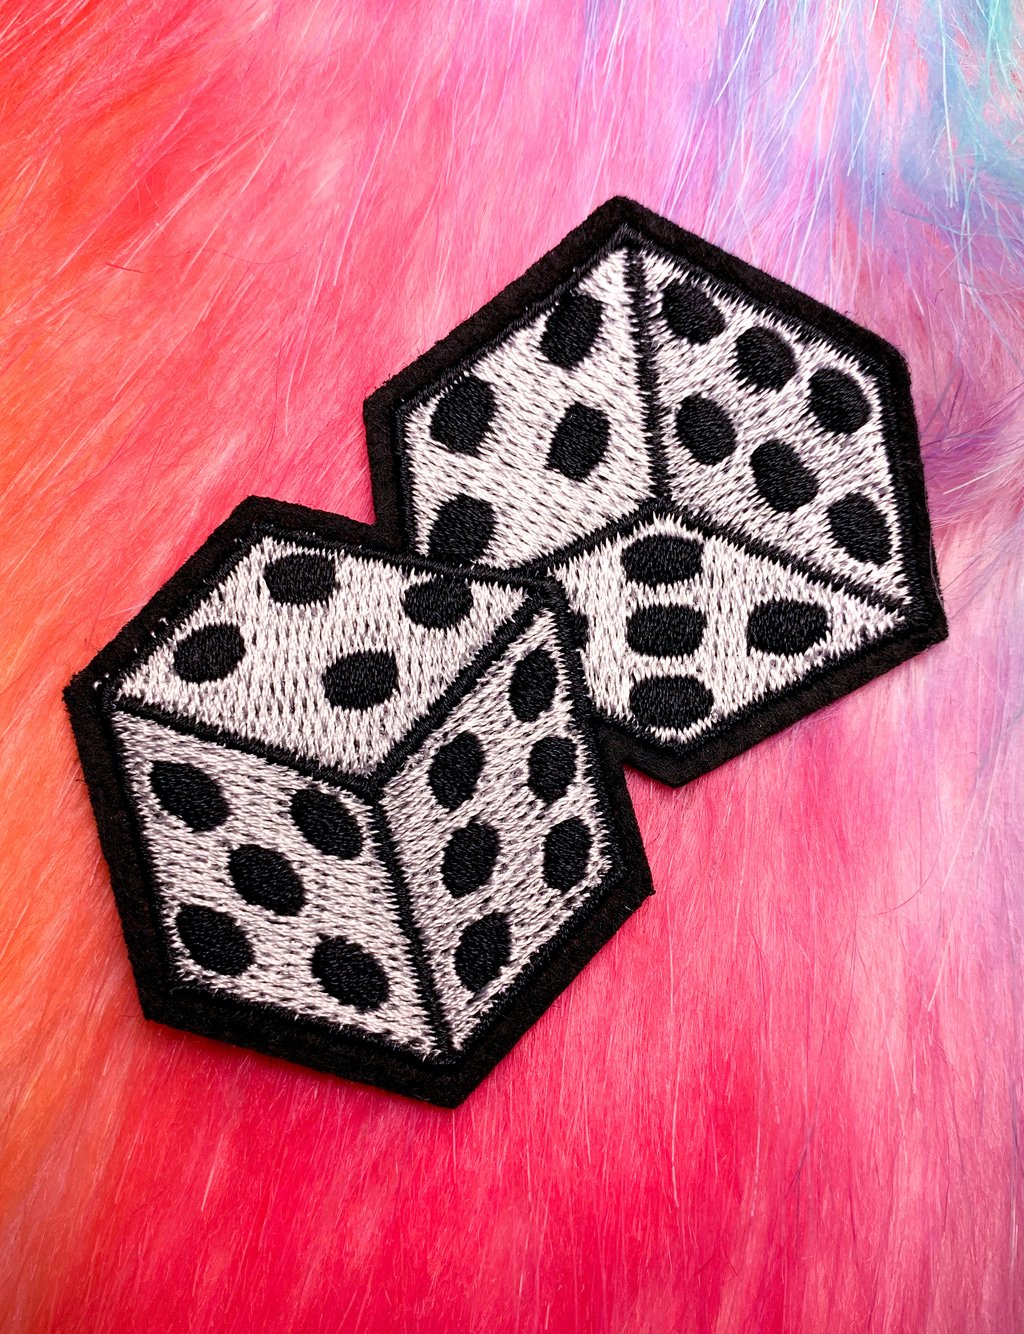 DICE PATCH